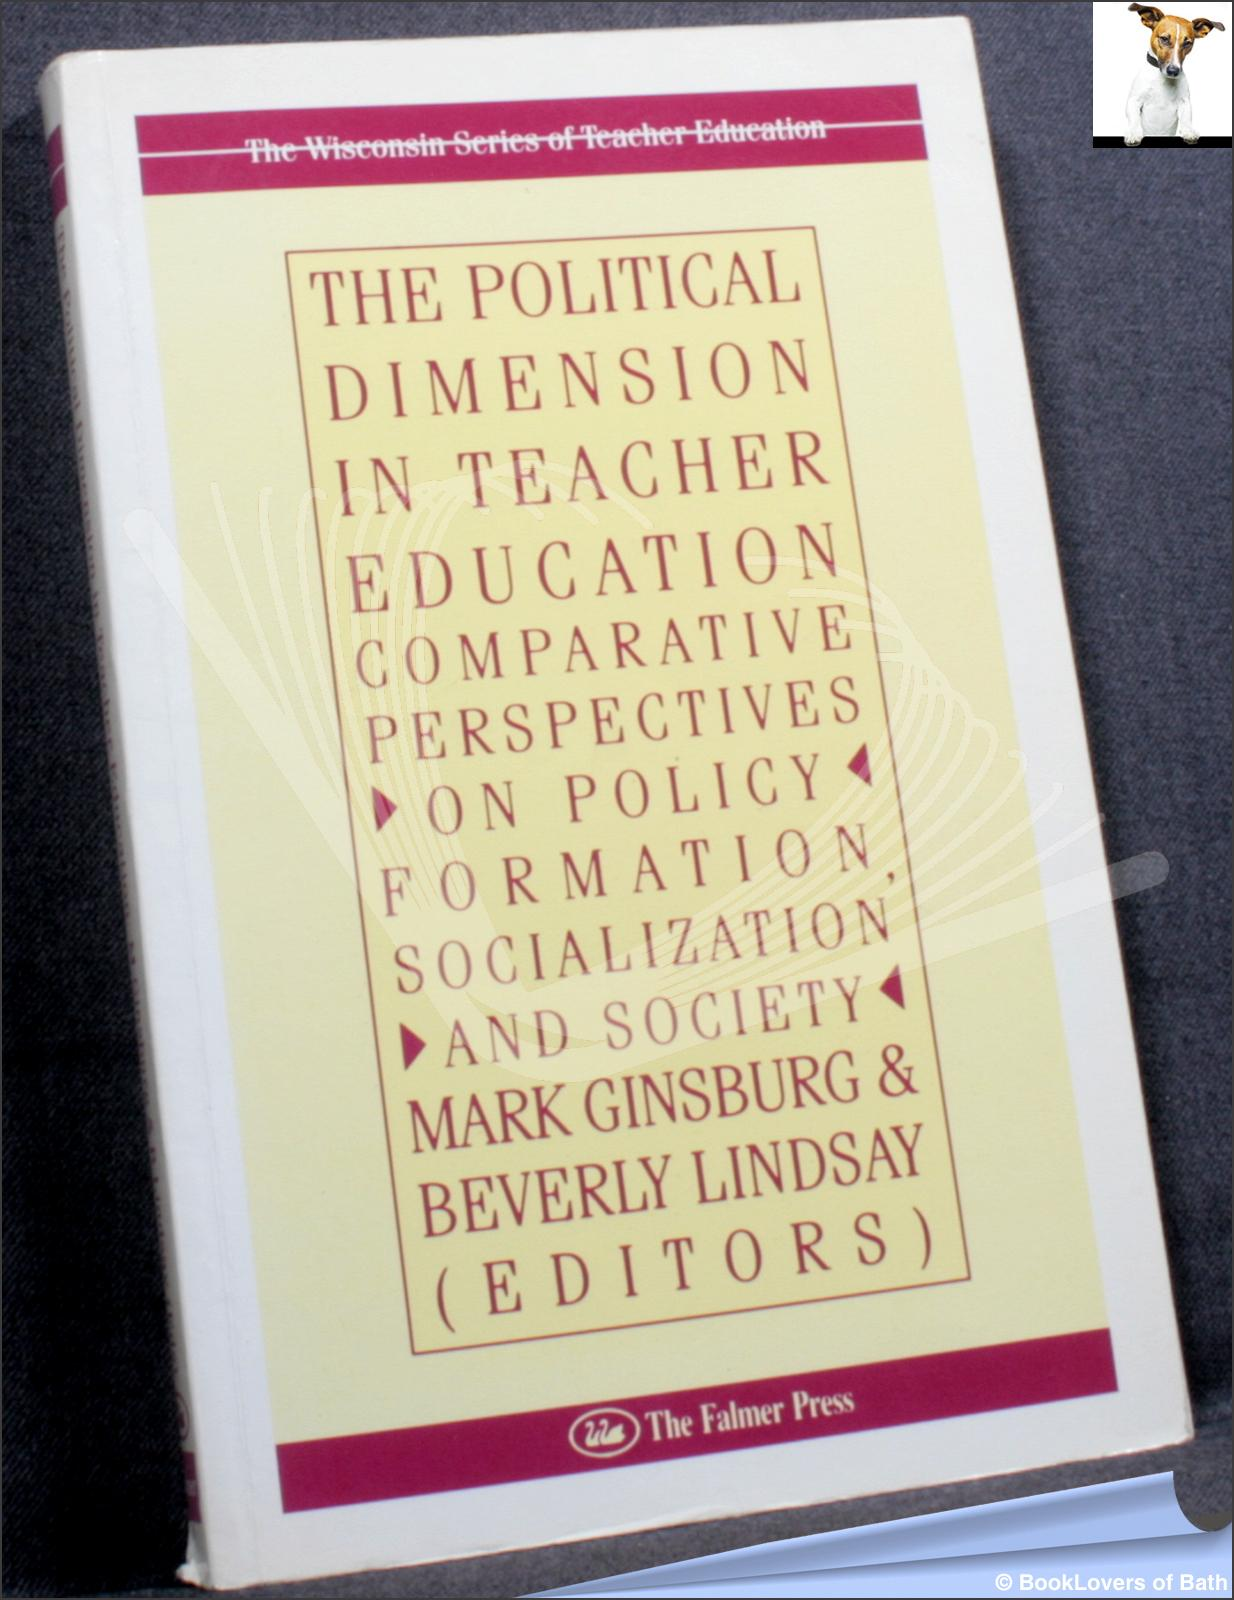 The Political Dimension in Teacher Education: Comparative Perspectives on Policy Formation, Socialization and Society - Mark B. Ginsburg & Beverly Lindsay